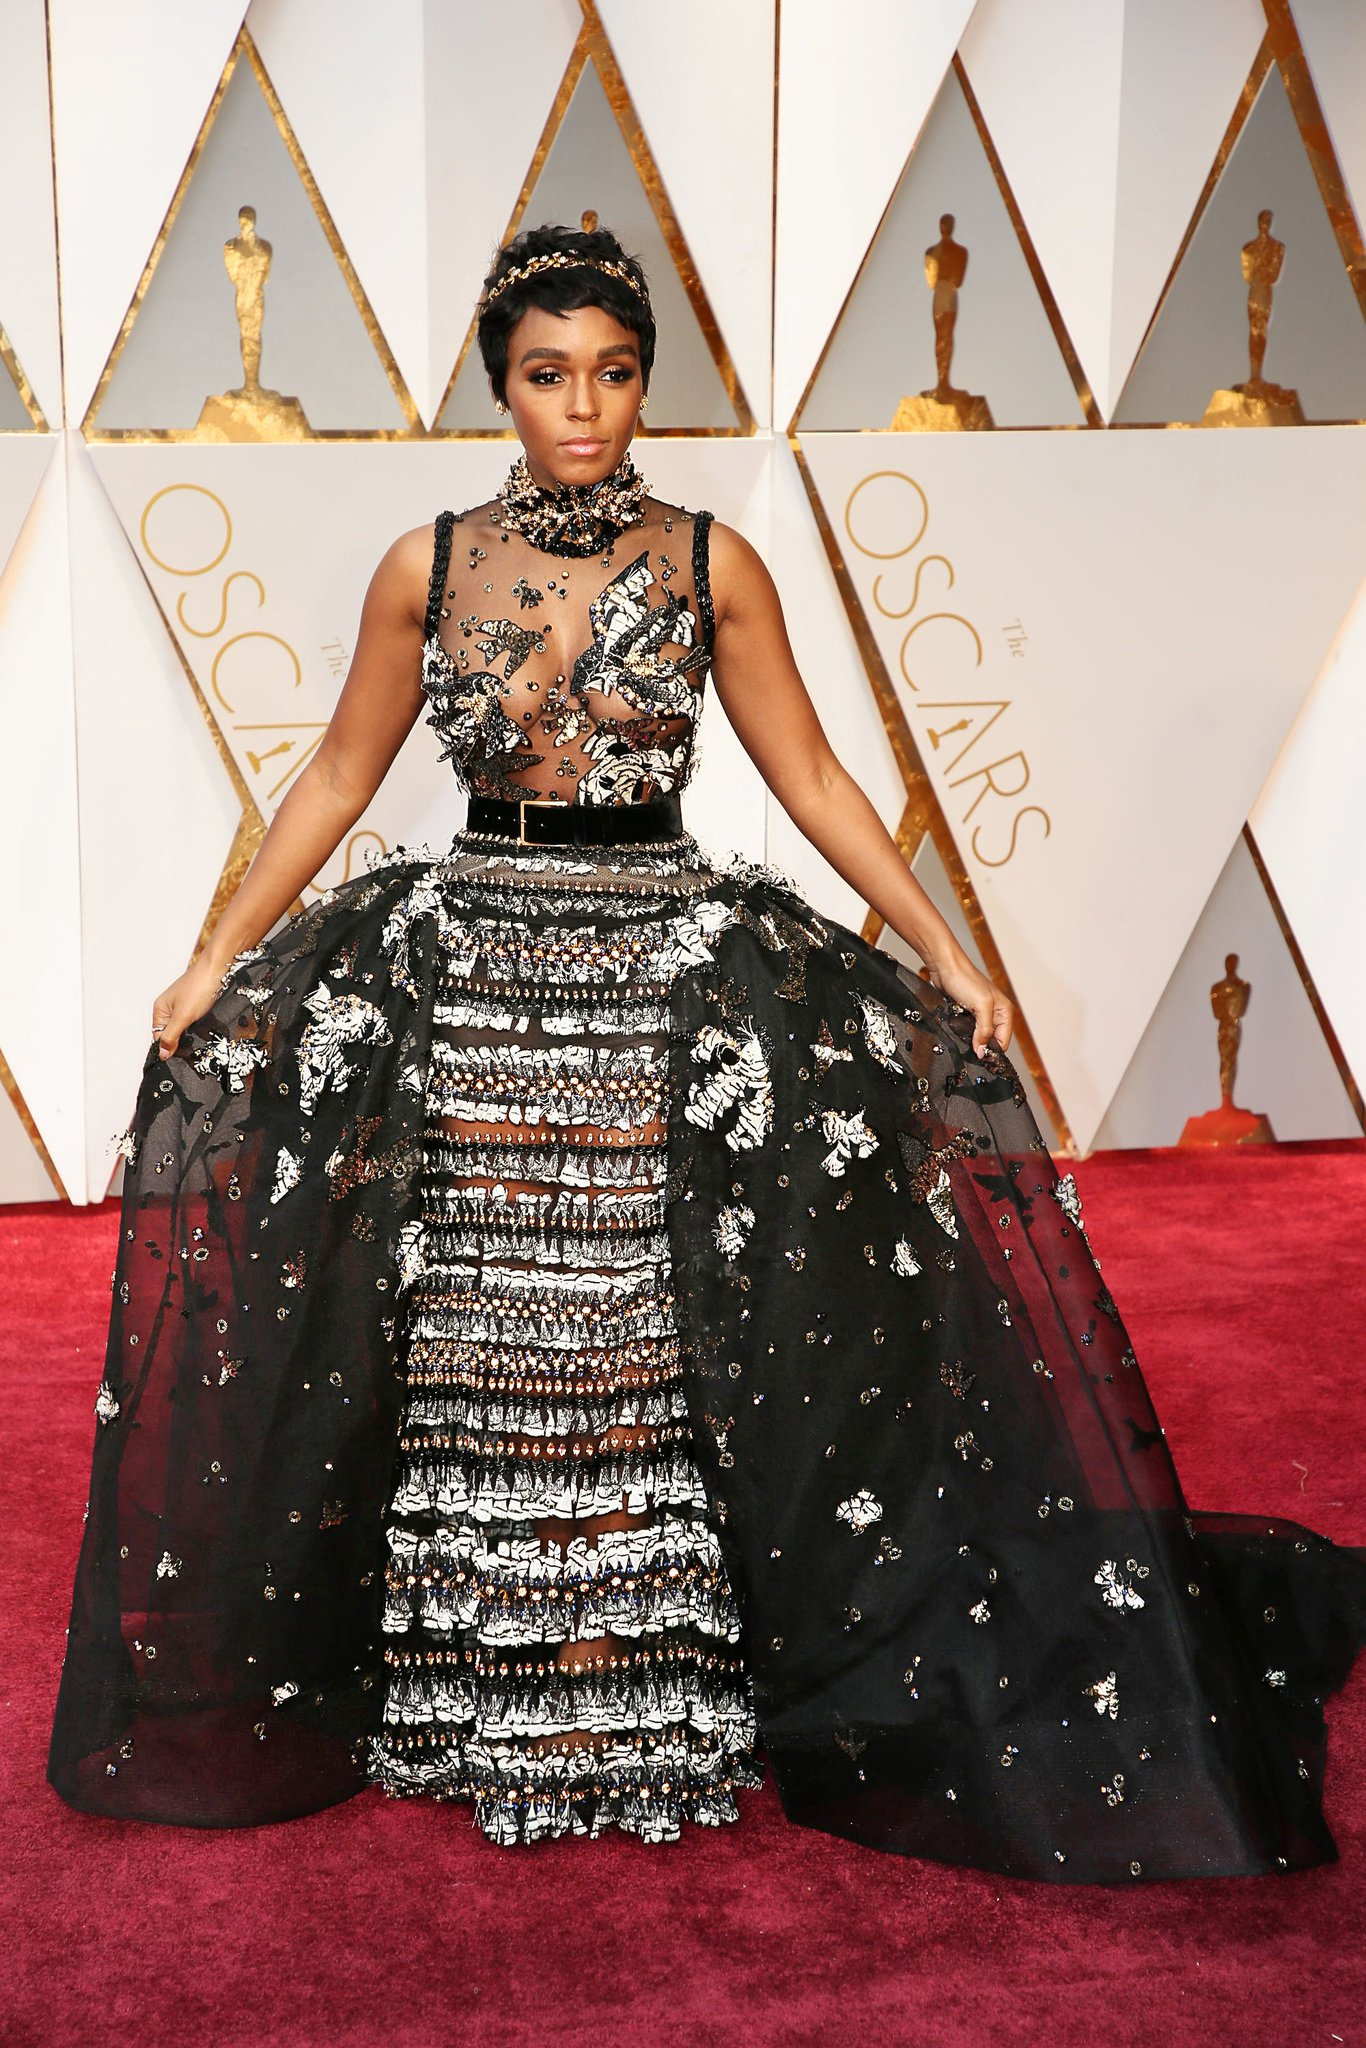 oscars-red-carpet-1412-janelle-monae-superJumbo-v3.jpg